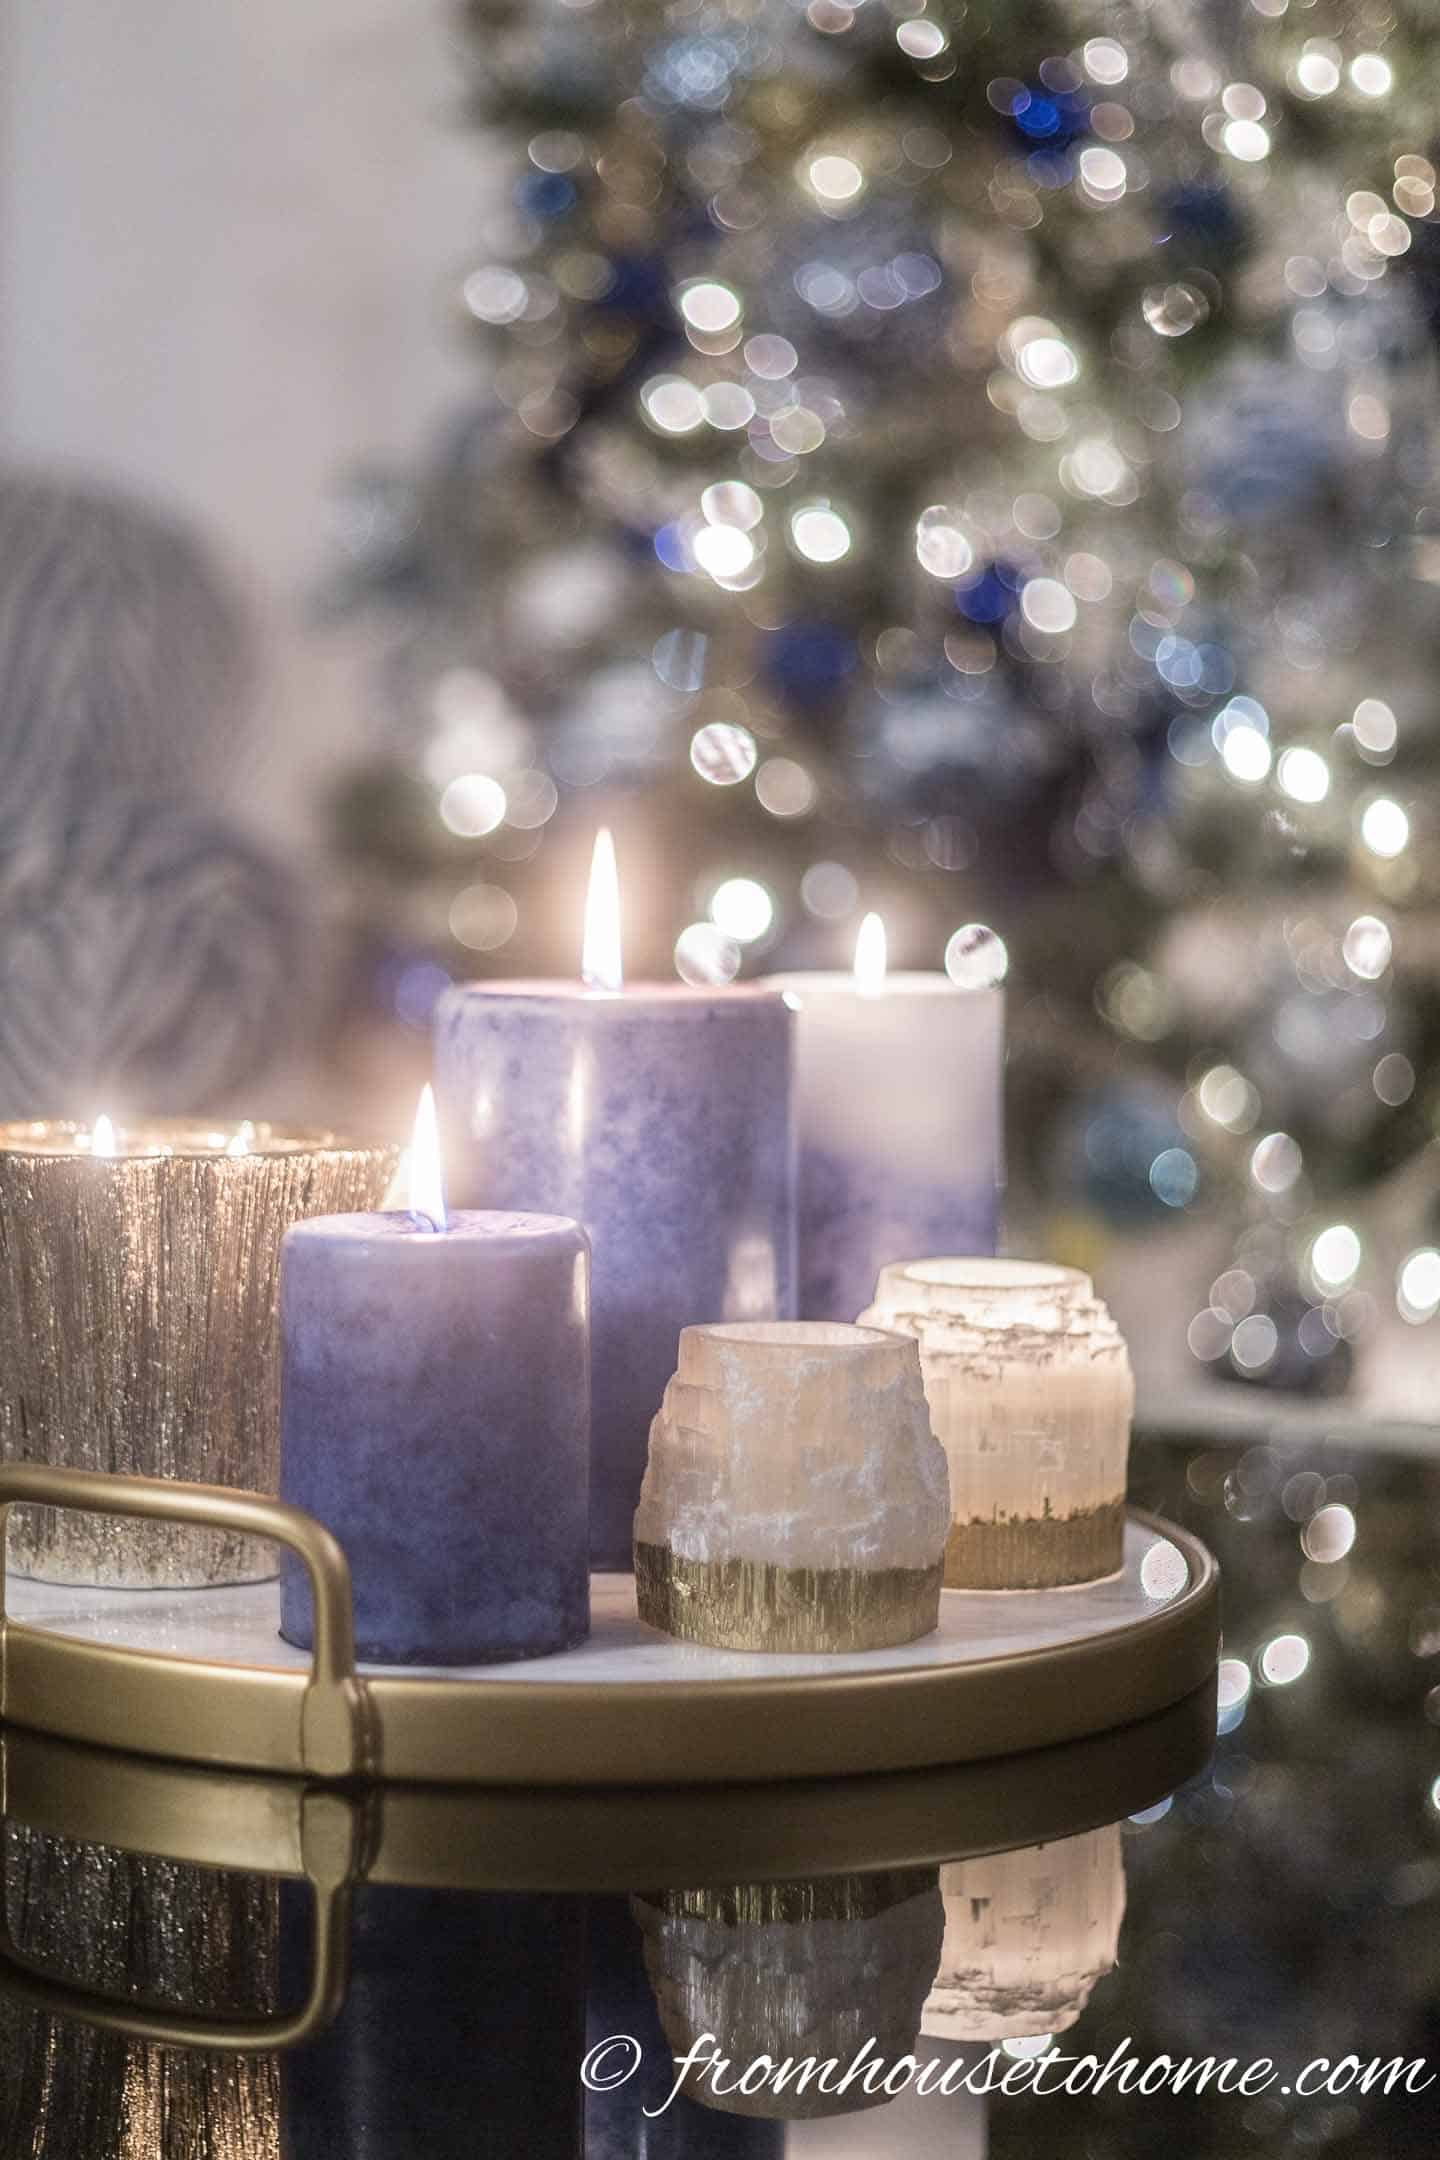 Blue, white and gold candles with a christmas tree in the background